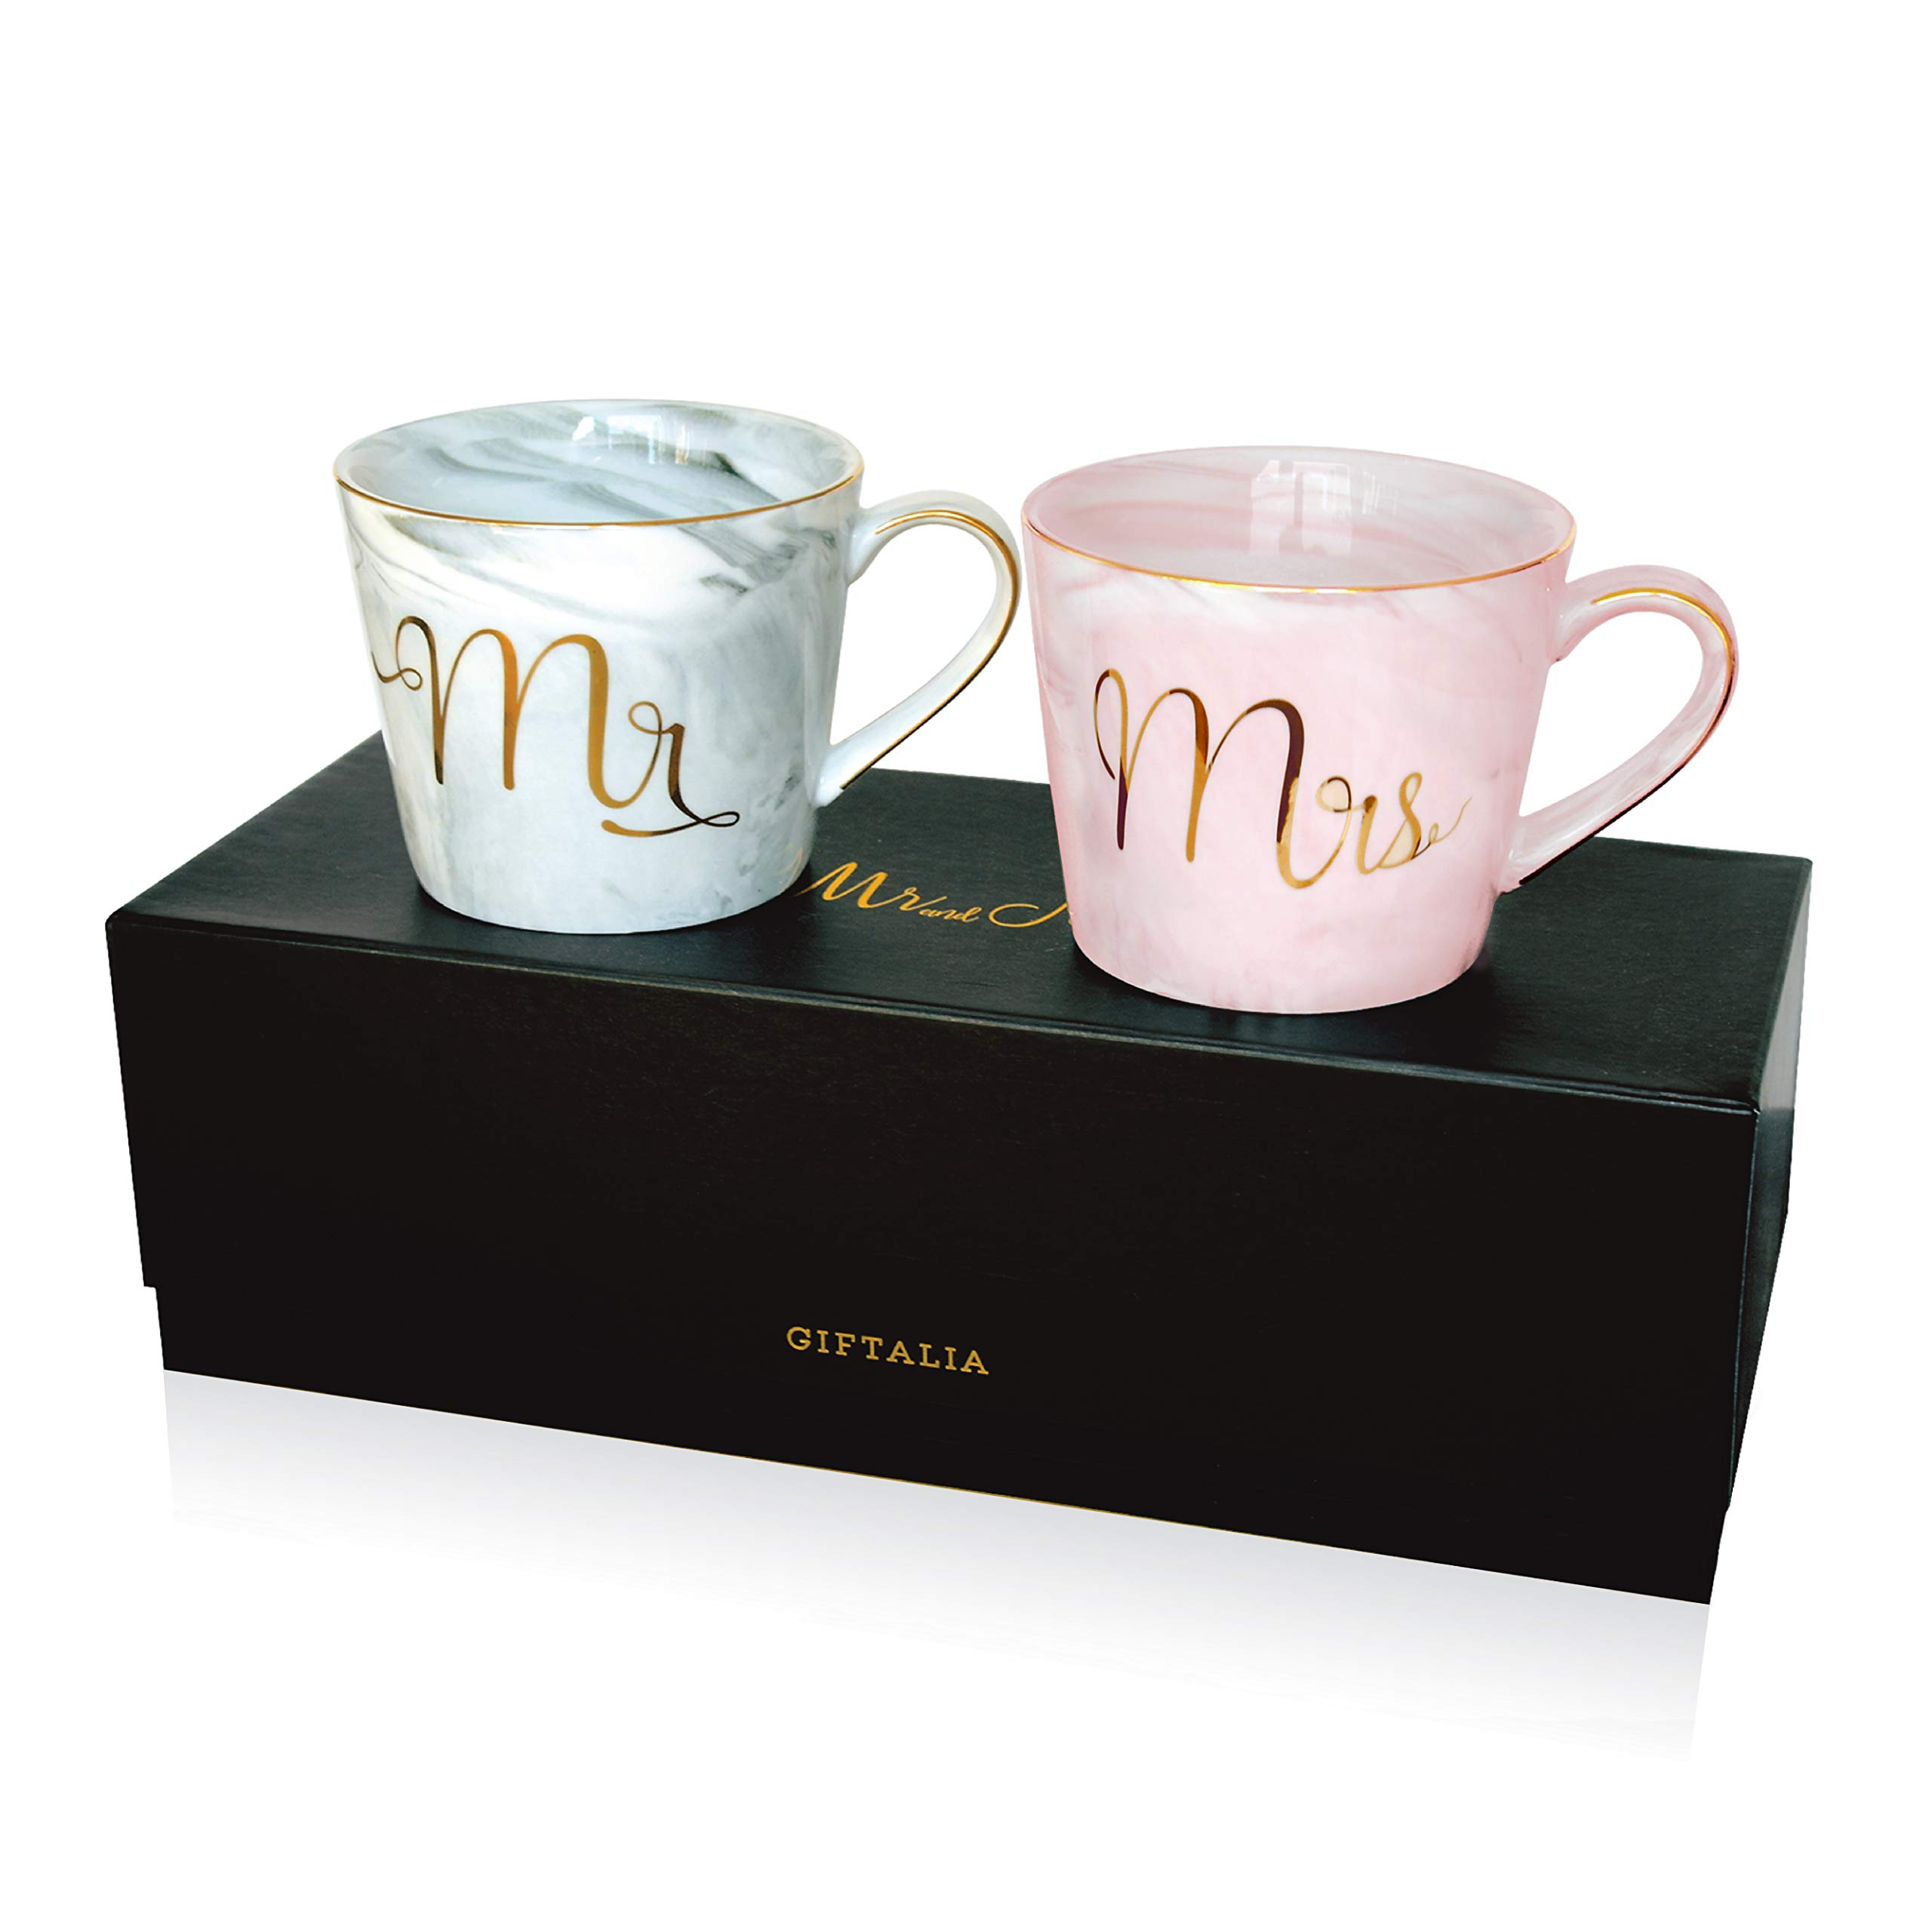 14 oz Perfect Personalized Gift for Engagement Anniversary Marble Ceramic Mugs Wedding Unique Elegant Bride Gift Bridal Shower Fantasy Functions Premium Grade Mr and Mrs Coffee Mugs